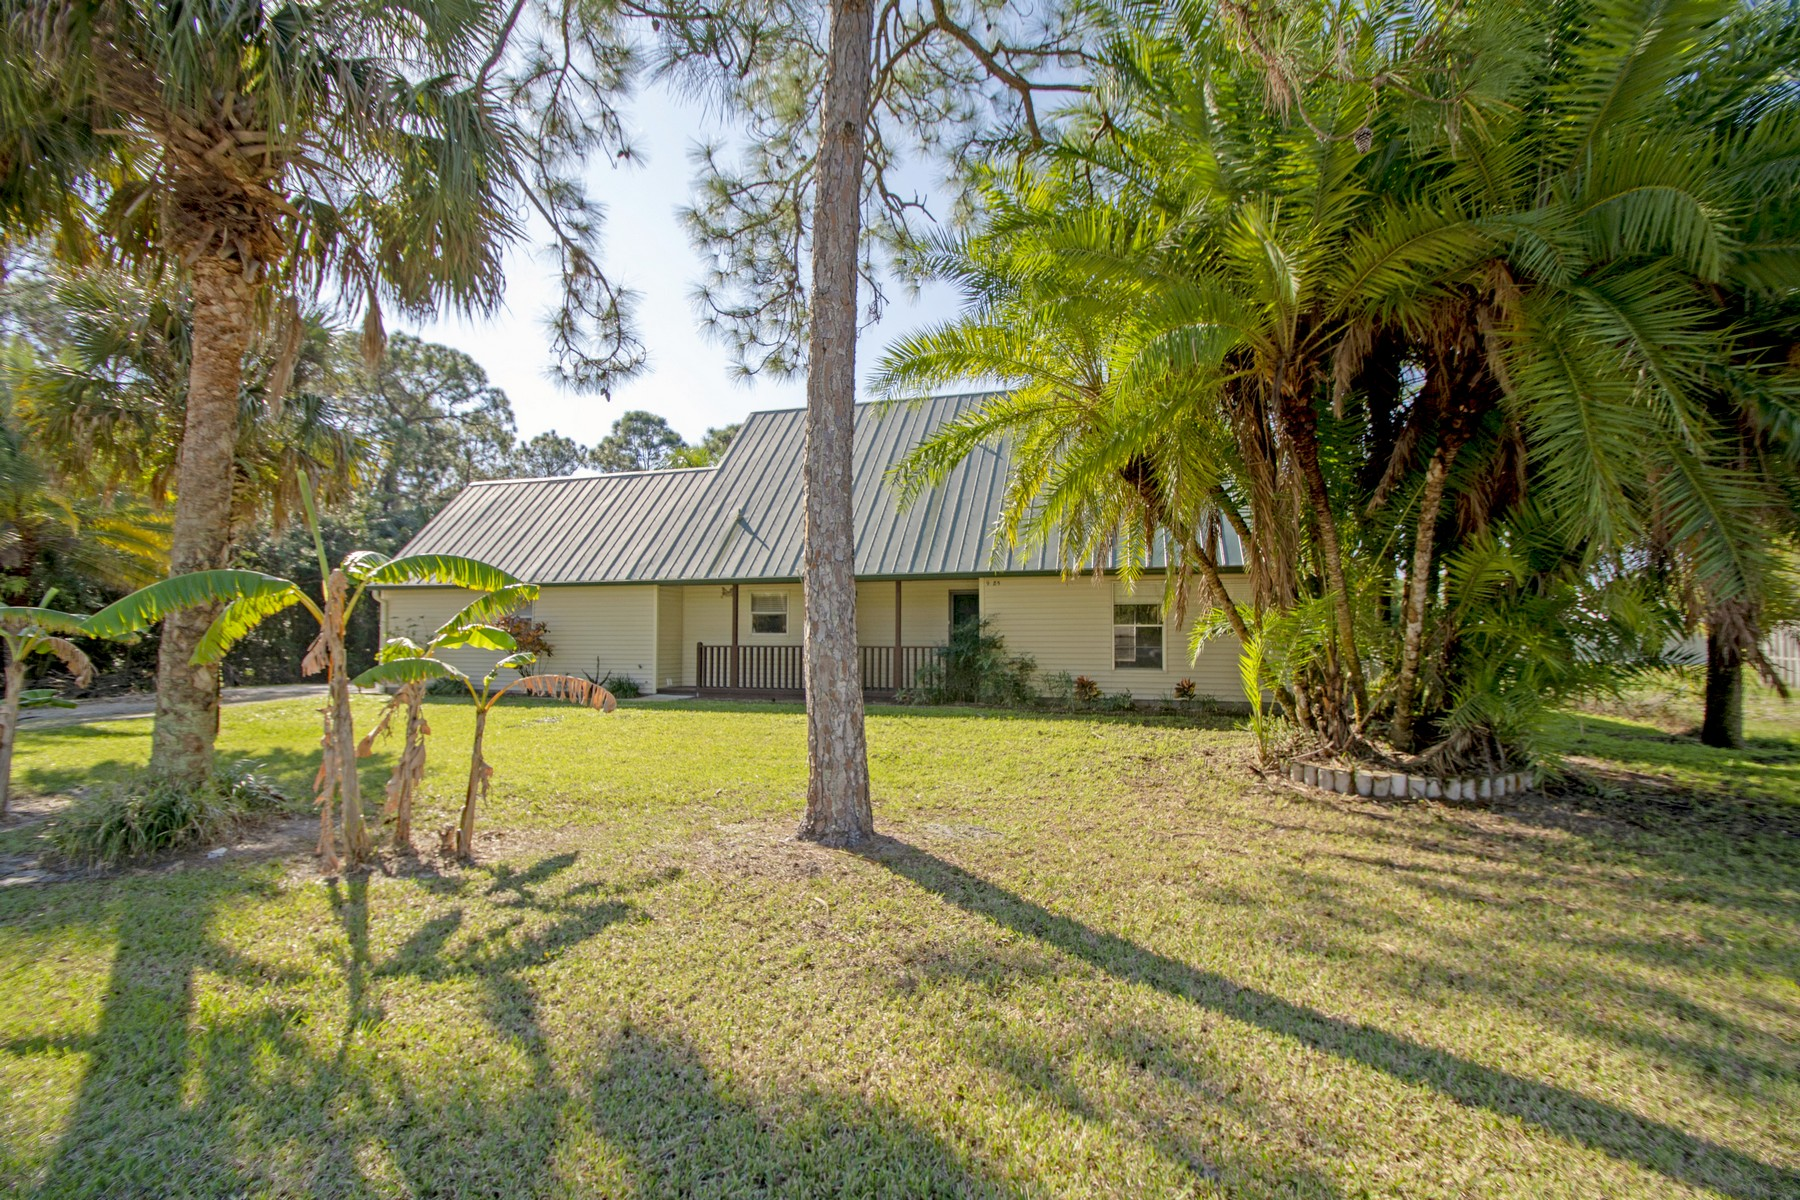 Single Family Home for Sale at Newly Renovated Home on Double Lot 9685 26th St Vero Beach, Florida 32966 United States